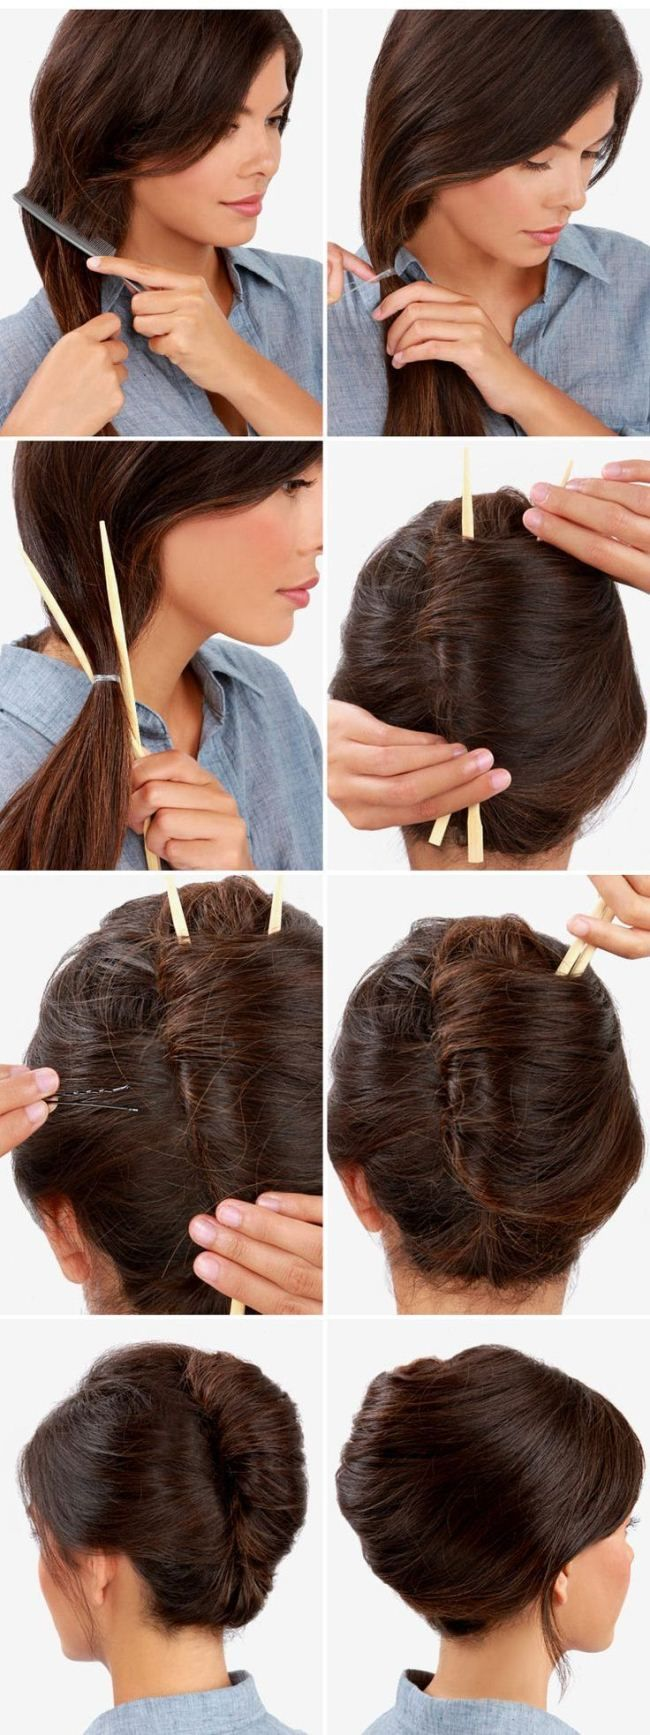 I Want To Do Easy Party Hairstyles For Long Hair Step By Step How ...